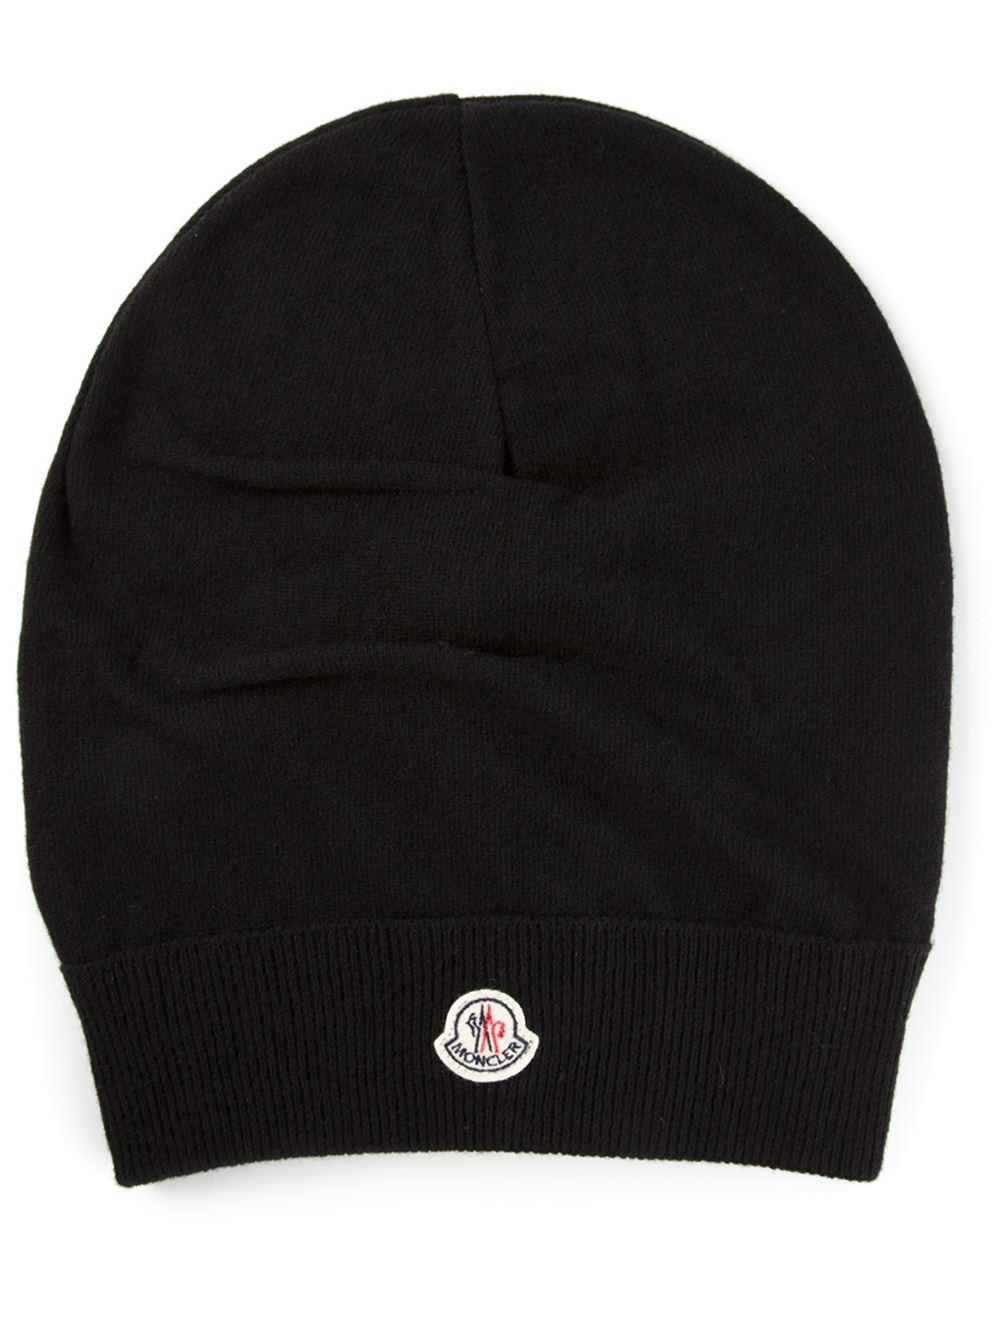 Moncler Slouchy Beanie in Black - Lyst e7749940fb8